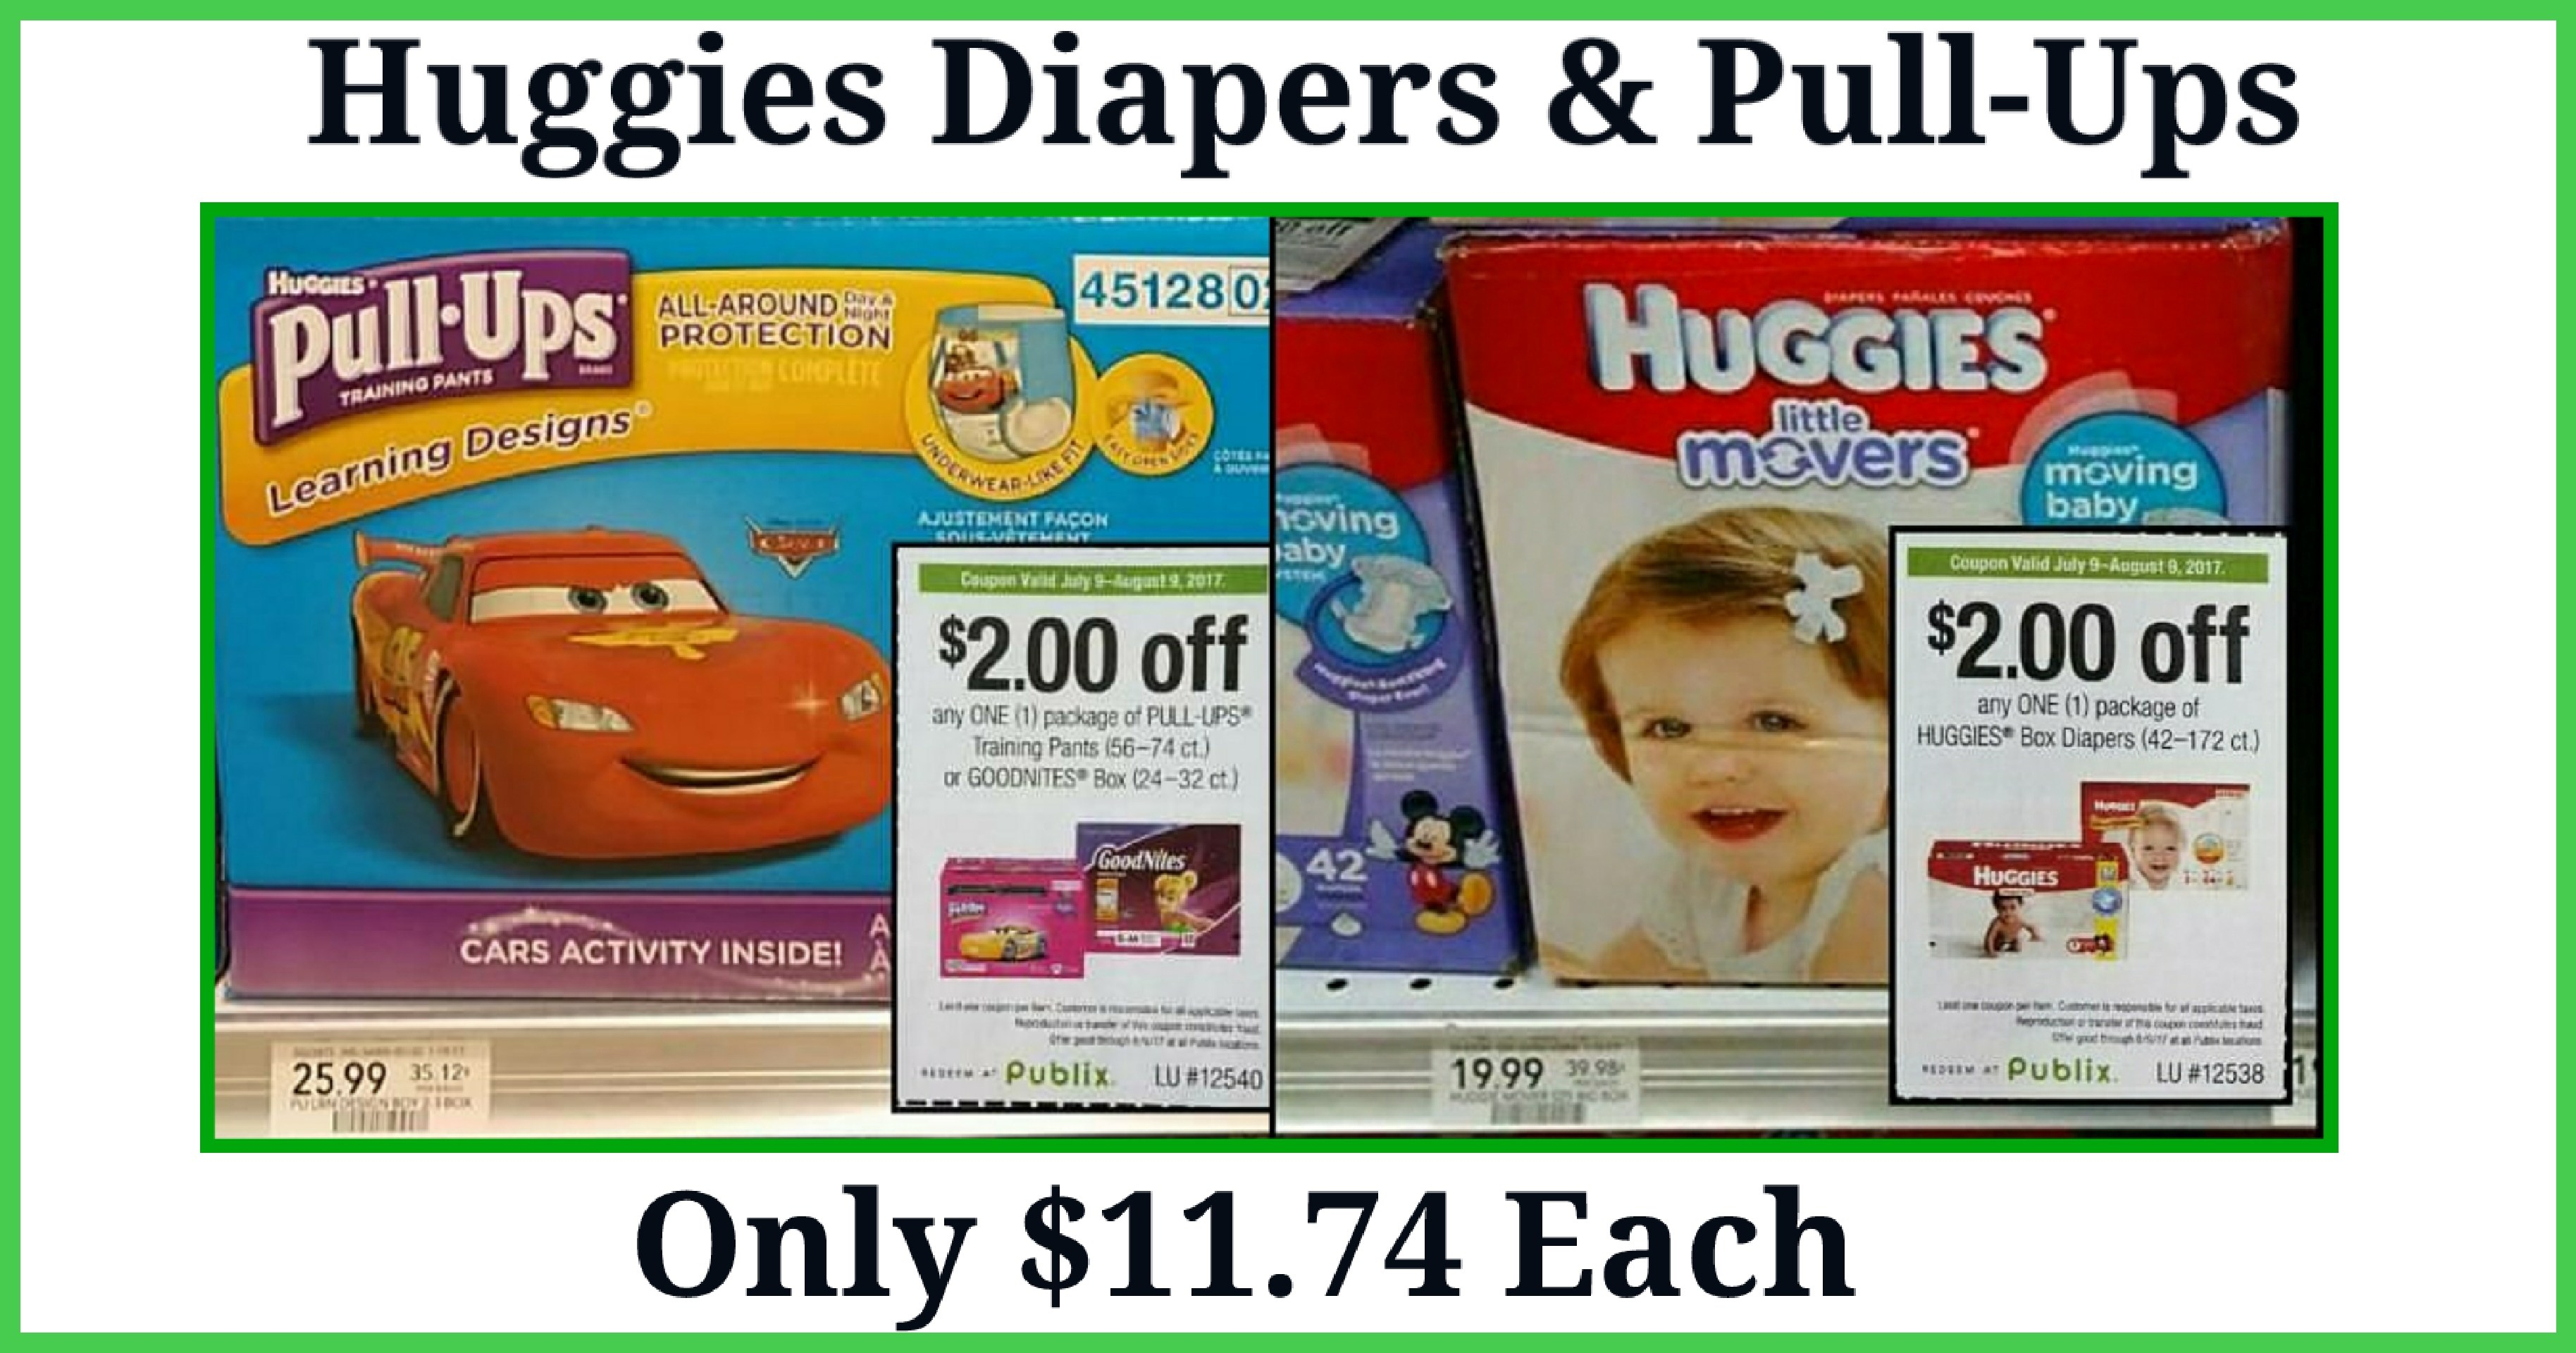 👶publix👶 Huggies Diapers & Pull-Ups Only $11.74 Each ~ 7/30-8/2 - Free Printable Coupons For Huggies Pull Ups